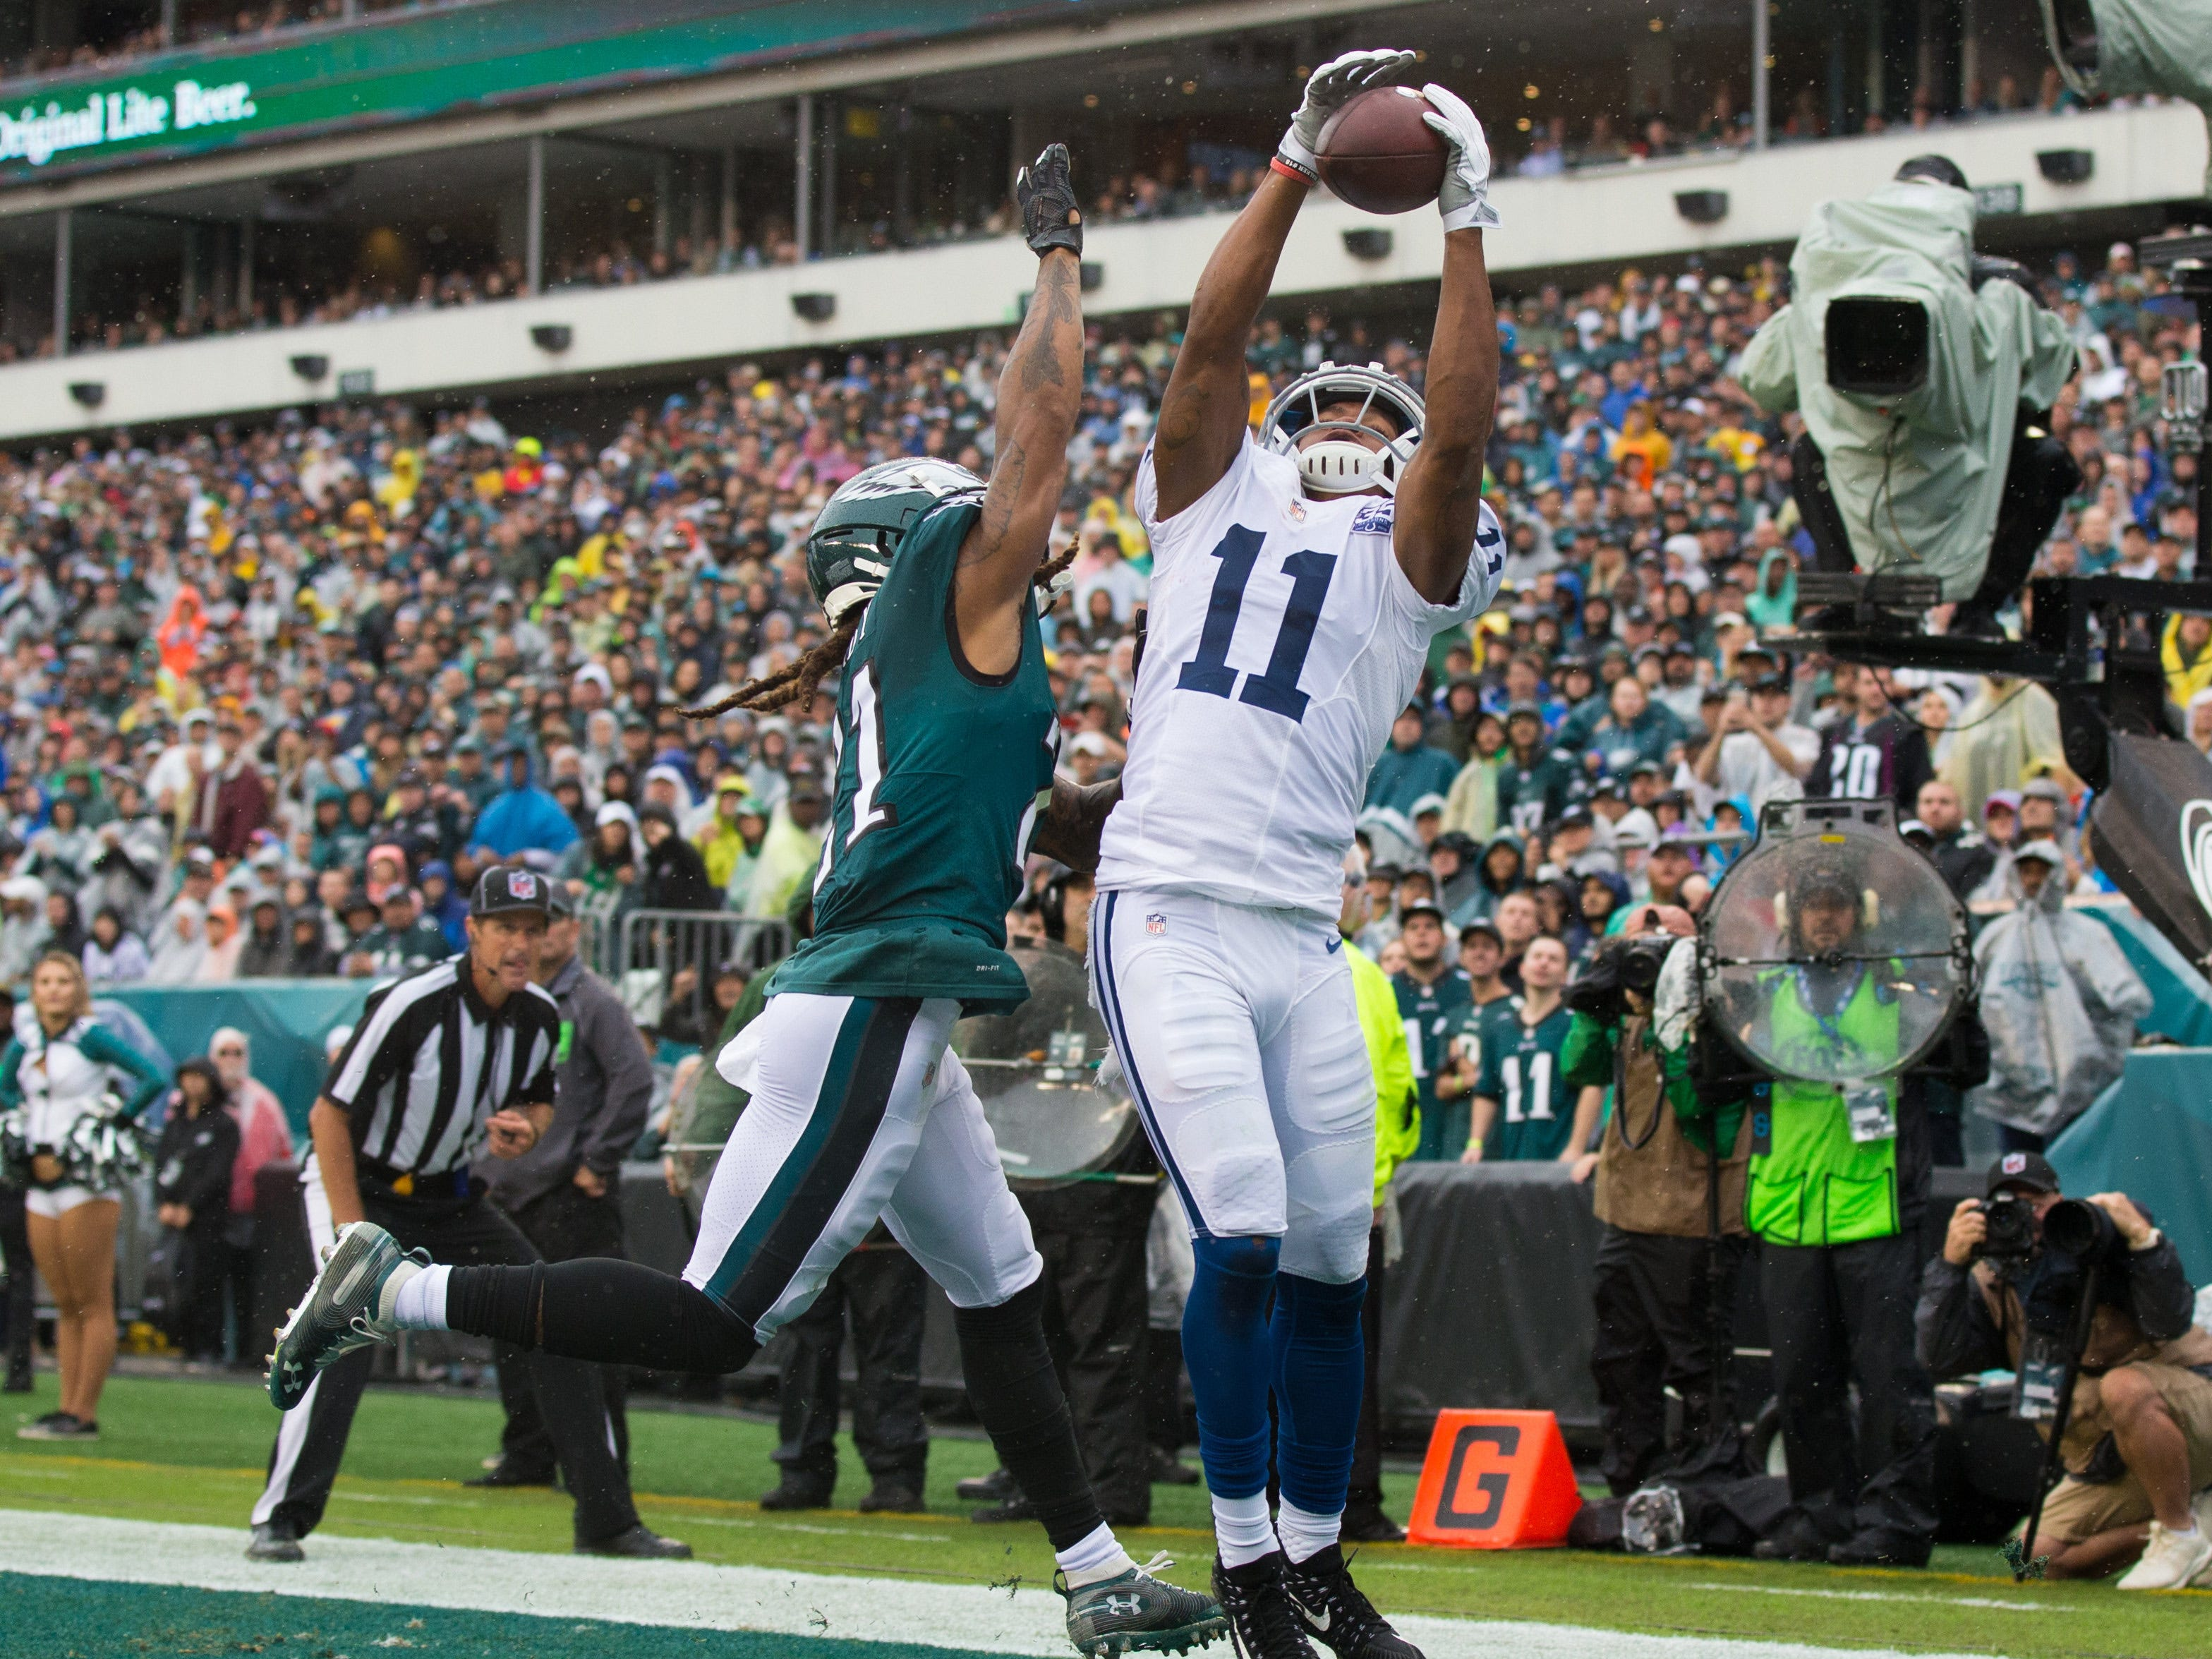 Indianapolis Colts wide receiver Ryan Grant makes a touchdown reception against Philadelphia Eagles cornerback Ronald Darby during the first quarter at Lincoln Financial Field.